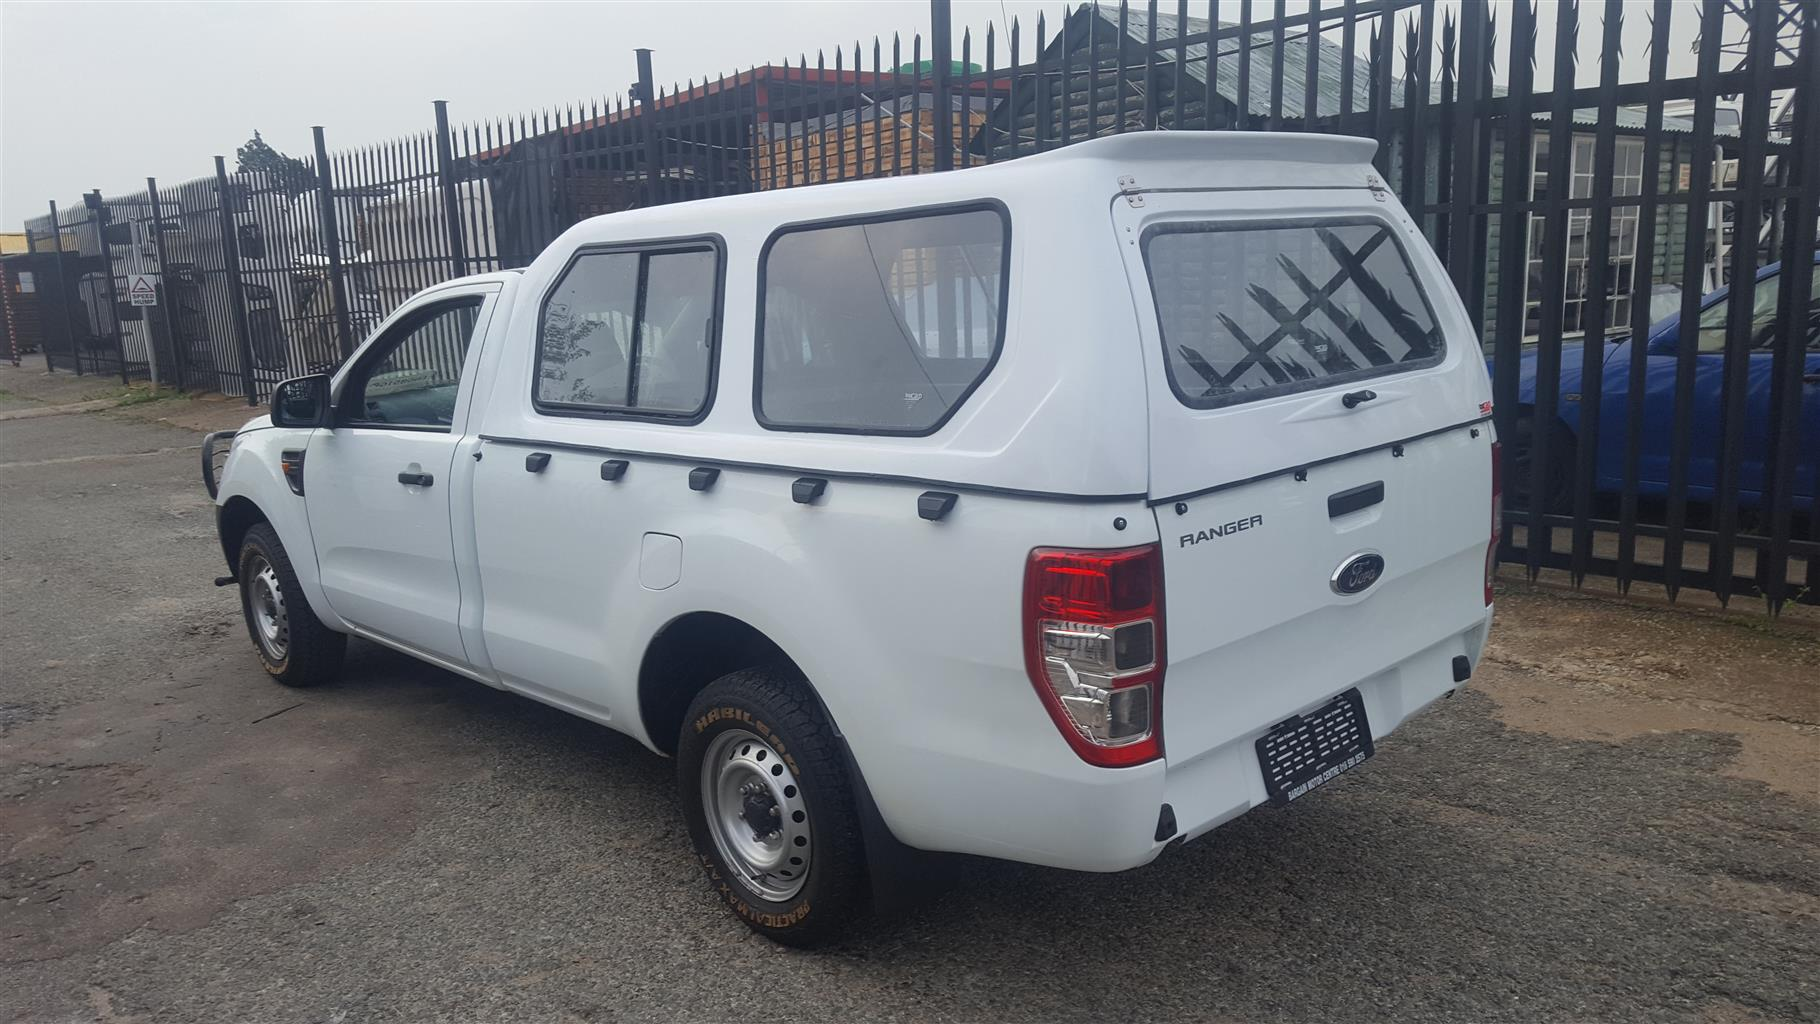 BRAND NEW RANGER T6/T7 SINGLE CAB WHITE CANOPY FOR SALE!!!